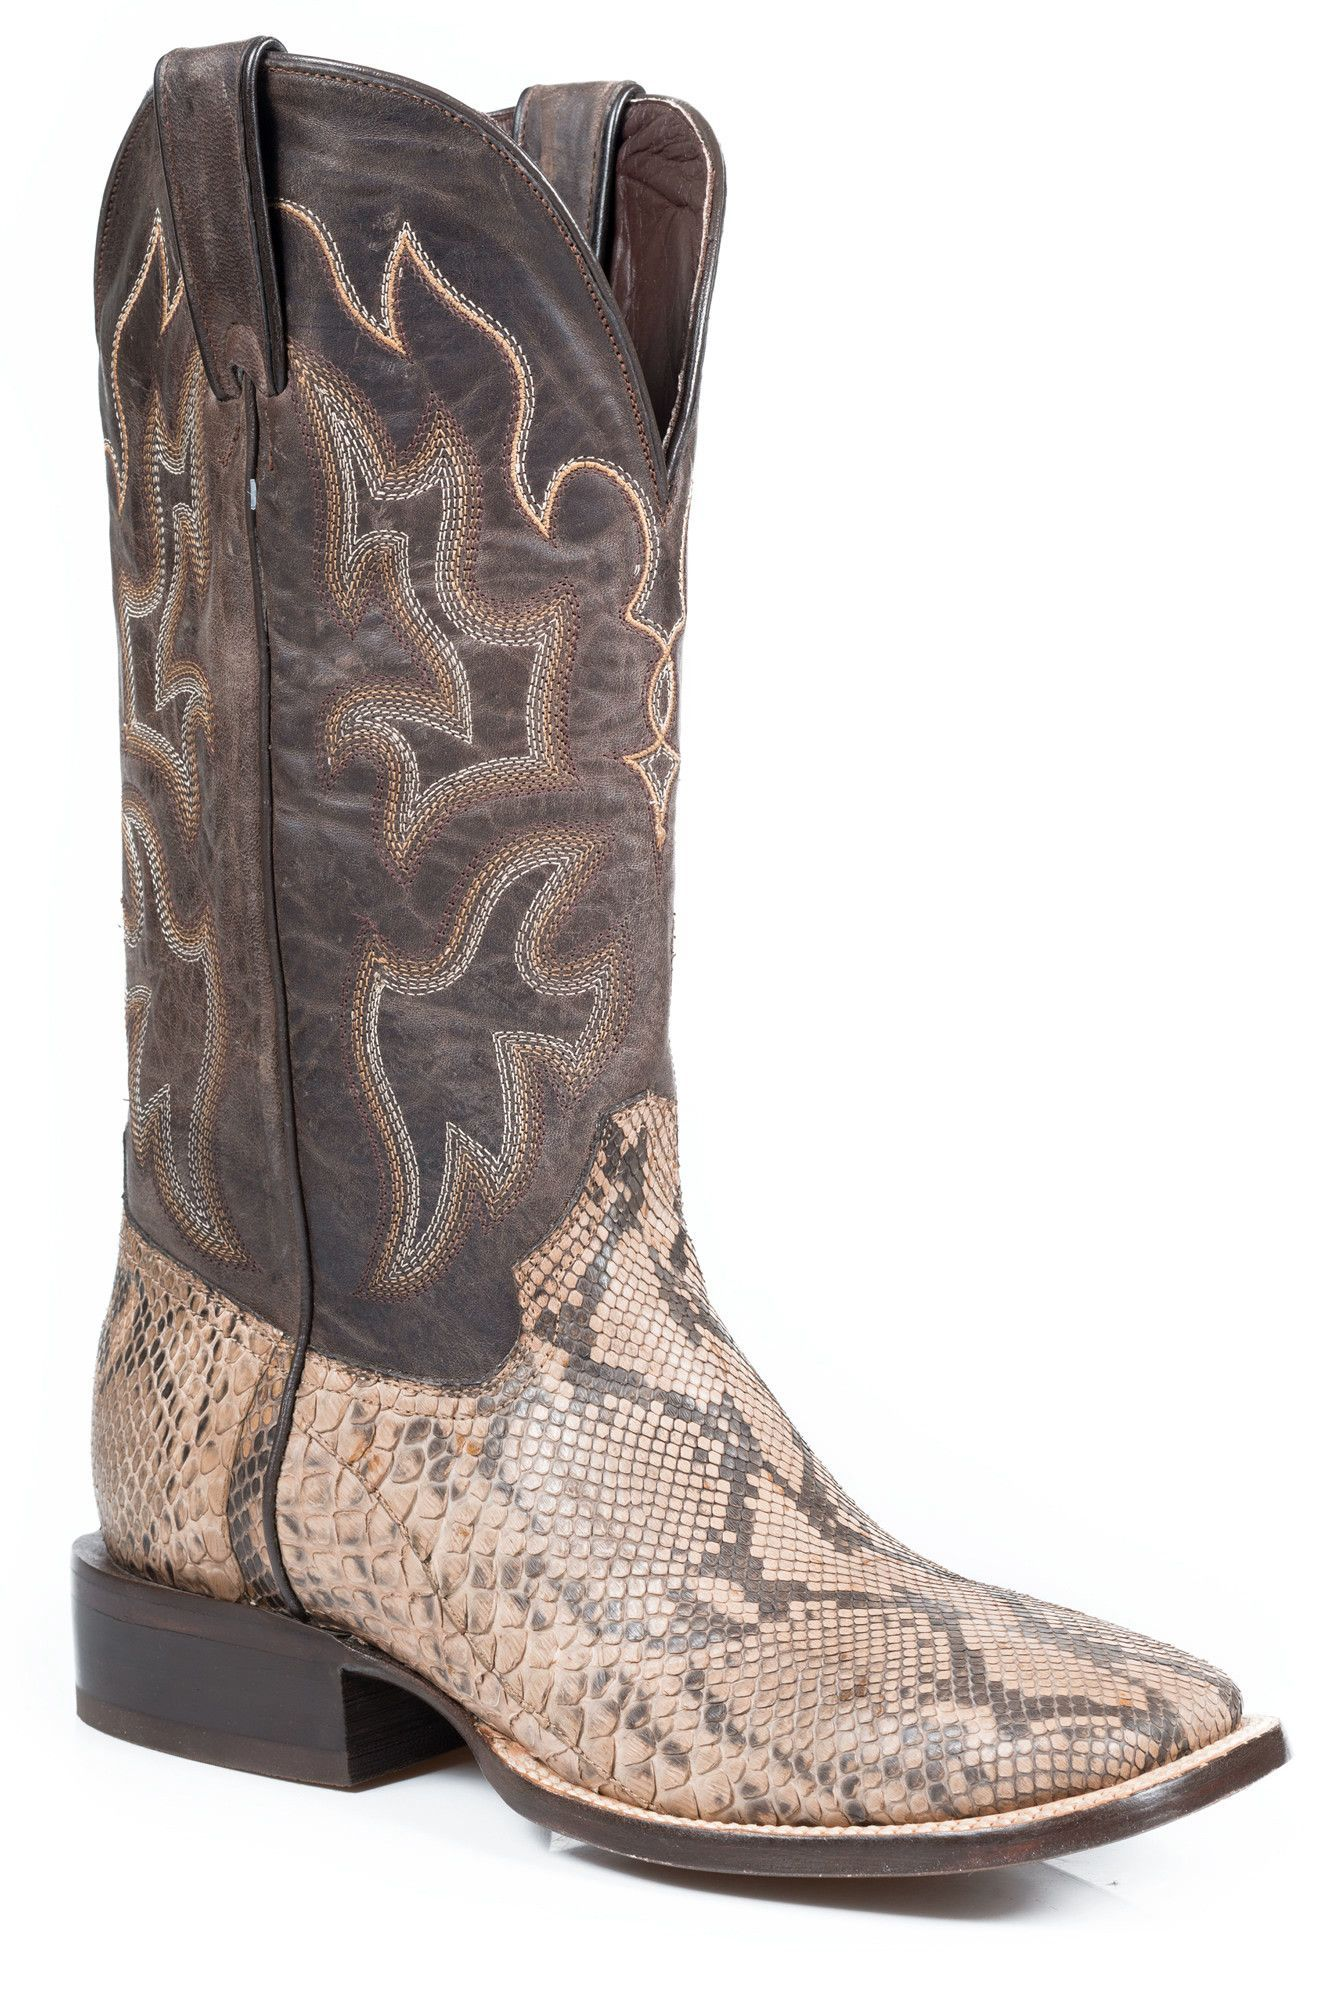 8196bae37c7 Stetson Mens Exotic Square Toe Boots Python Taupe Matte